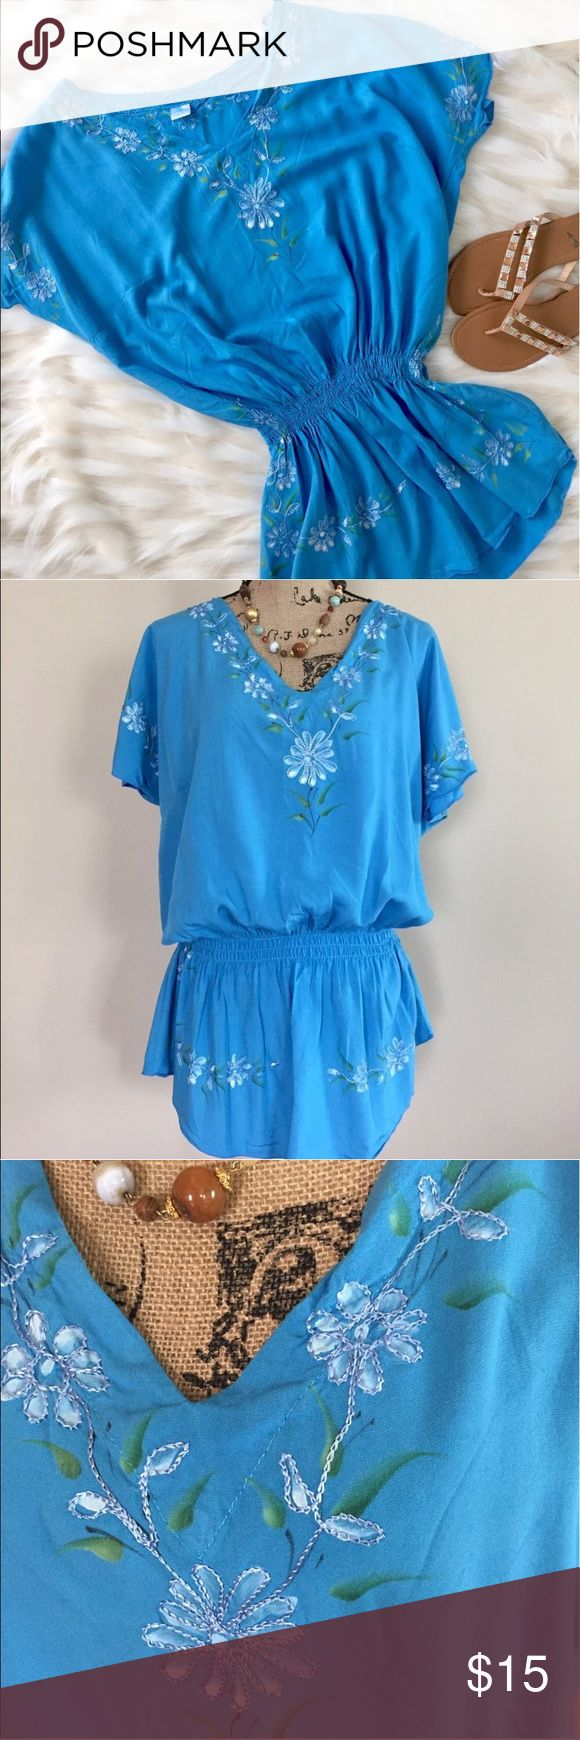 """Turquoise swim cover up Tropical turquoise coverup from a boutique in Punta Cana has a v neckline, loose short dolman sleeves, and an elasticized waist creating a blouson shape. Floral print accent with embroidery. One Size. 100% rayon. Bust measures 23"""" flat, waist 21"""" comfortably stretched, length 32"""".  ⭐️ Swim Coverups"""